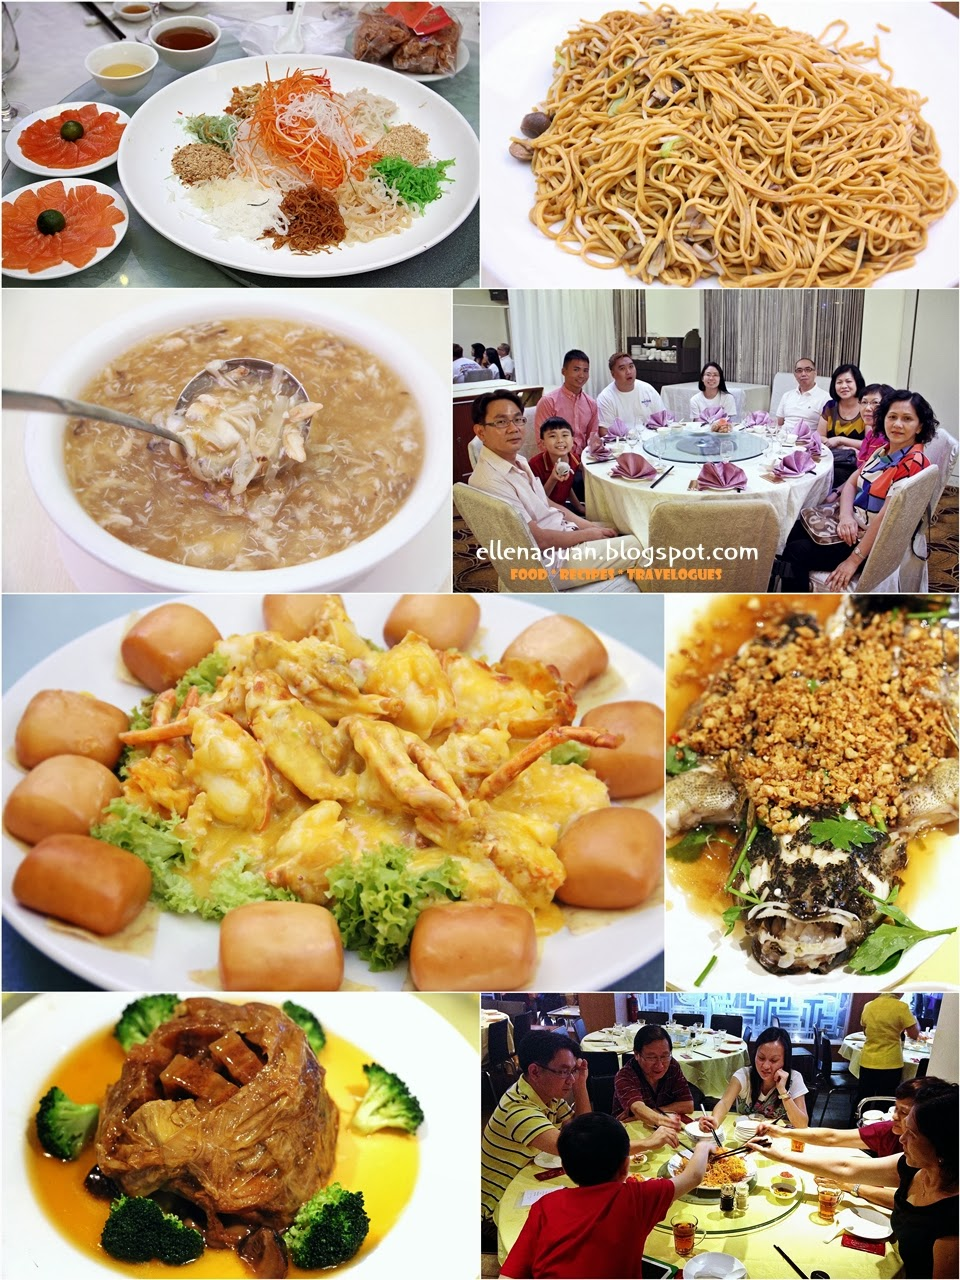 Cuisine paradise singapore food blog recipes reviews and travel with recipes our 2014 lunar new year reunion dinners forumfinder Image collections